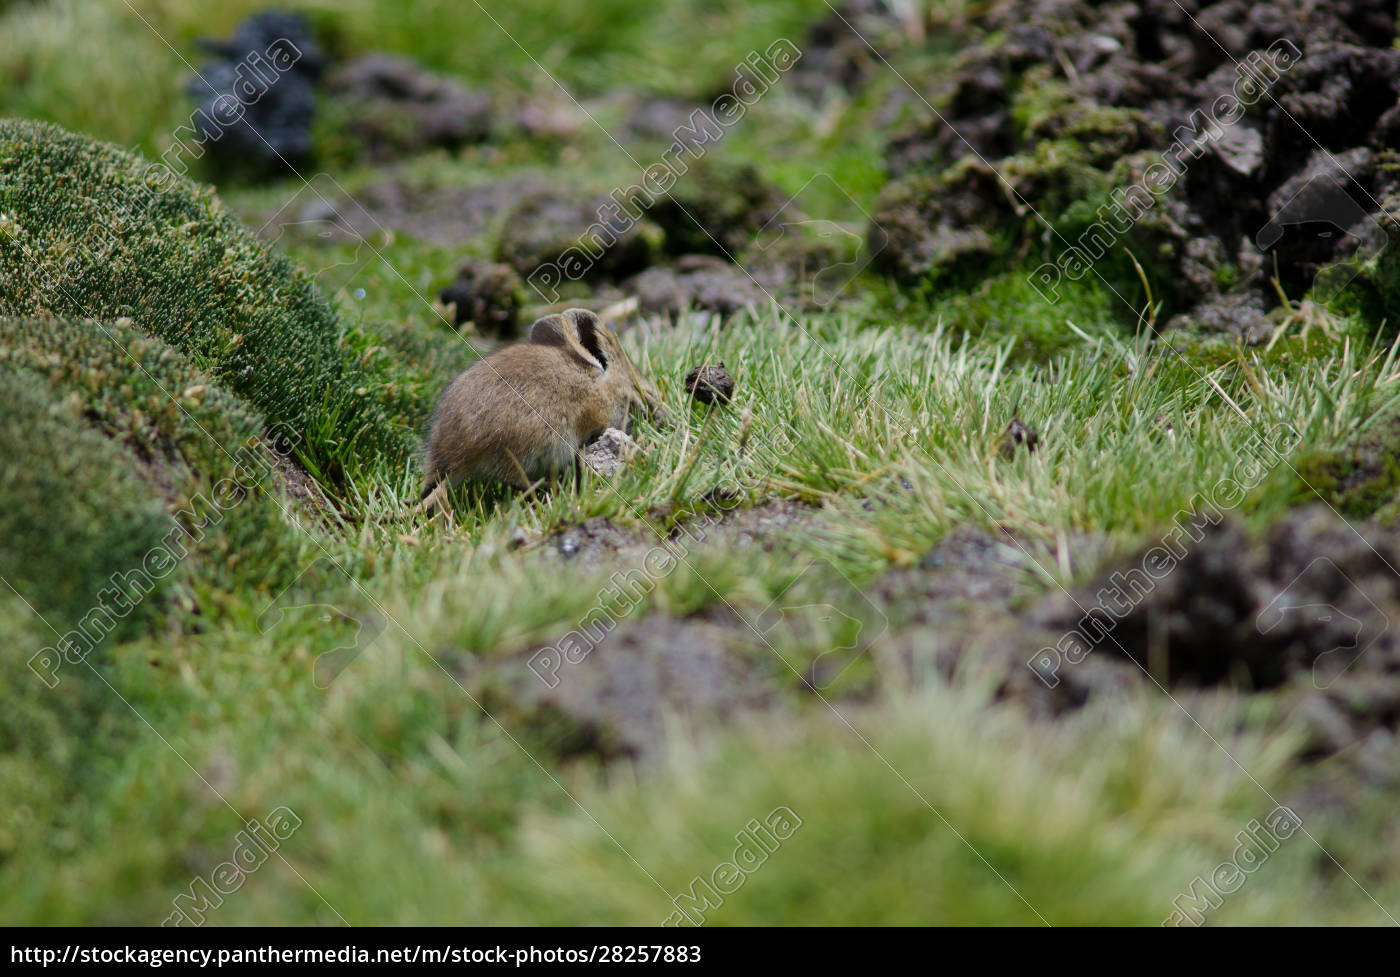 bolivian, big-eared, mouse, auliscomys, boliviensis, grazing - 28257883